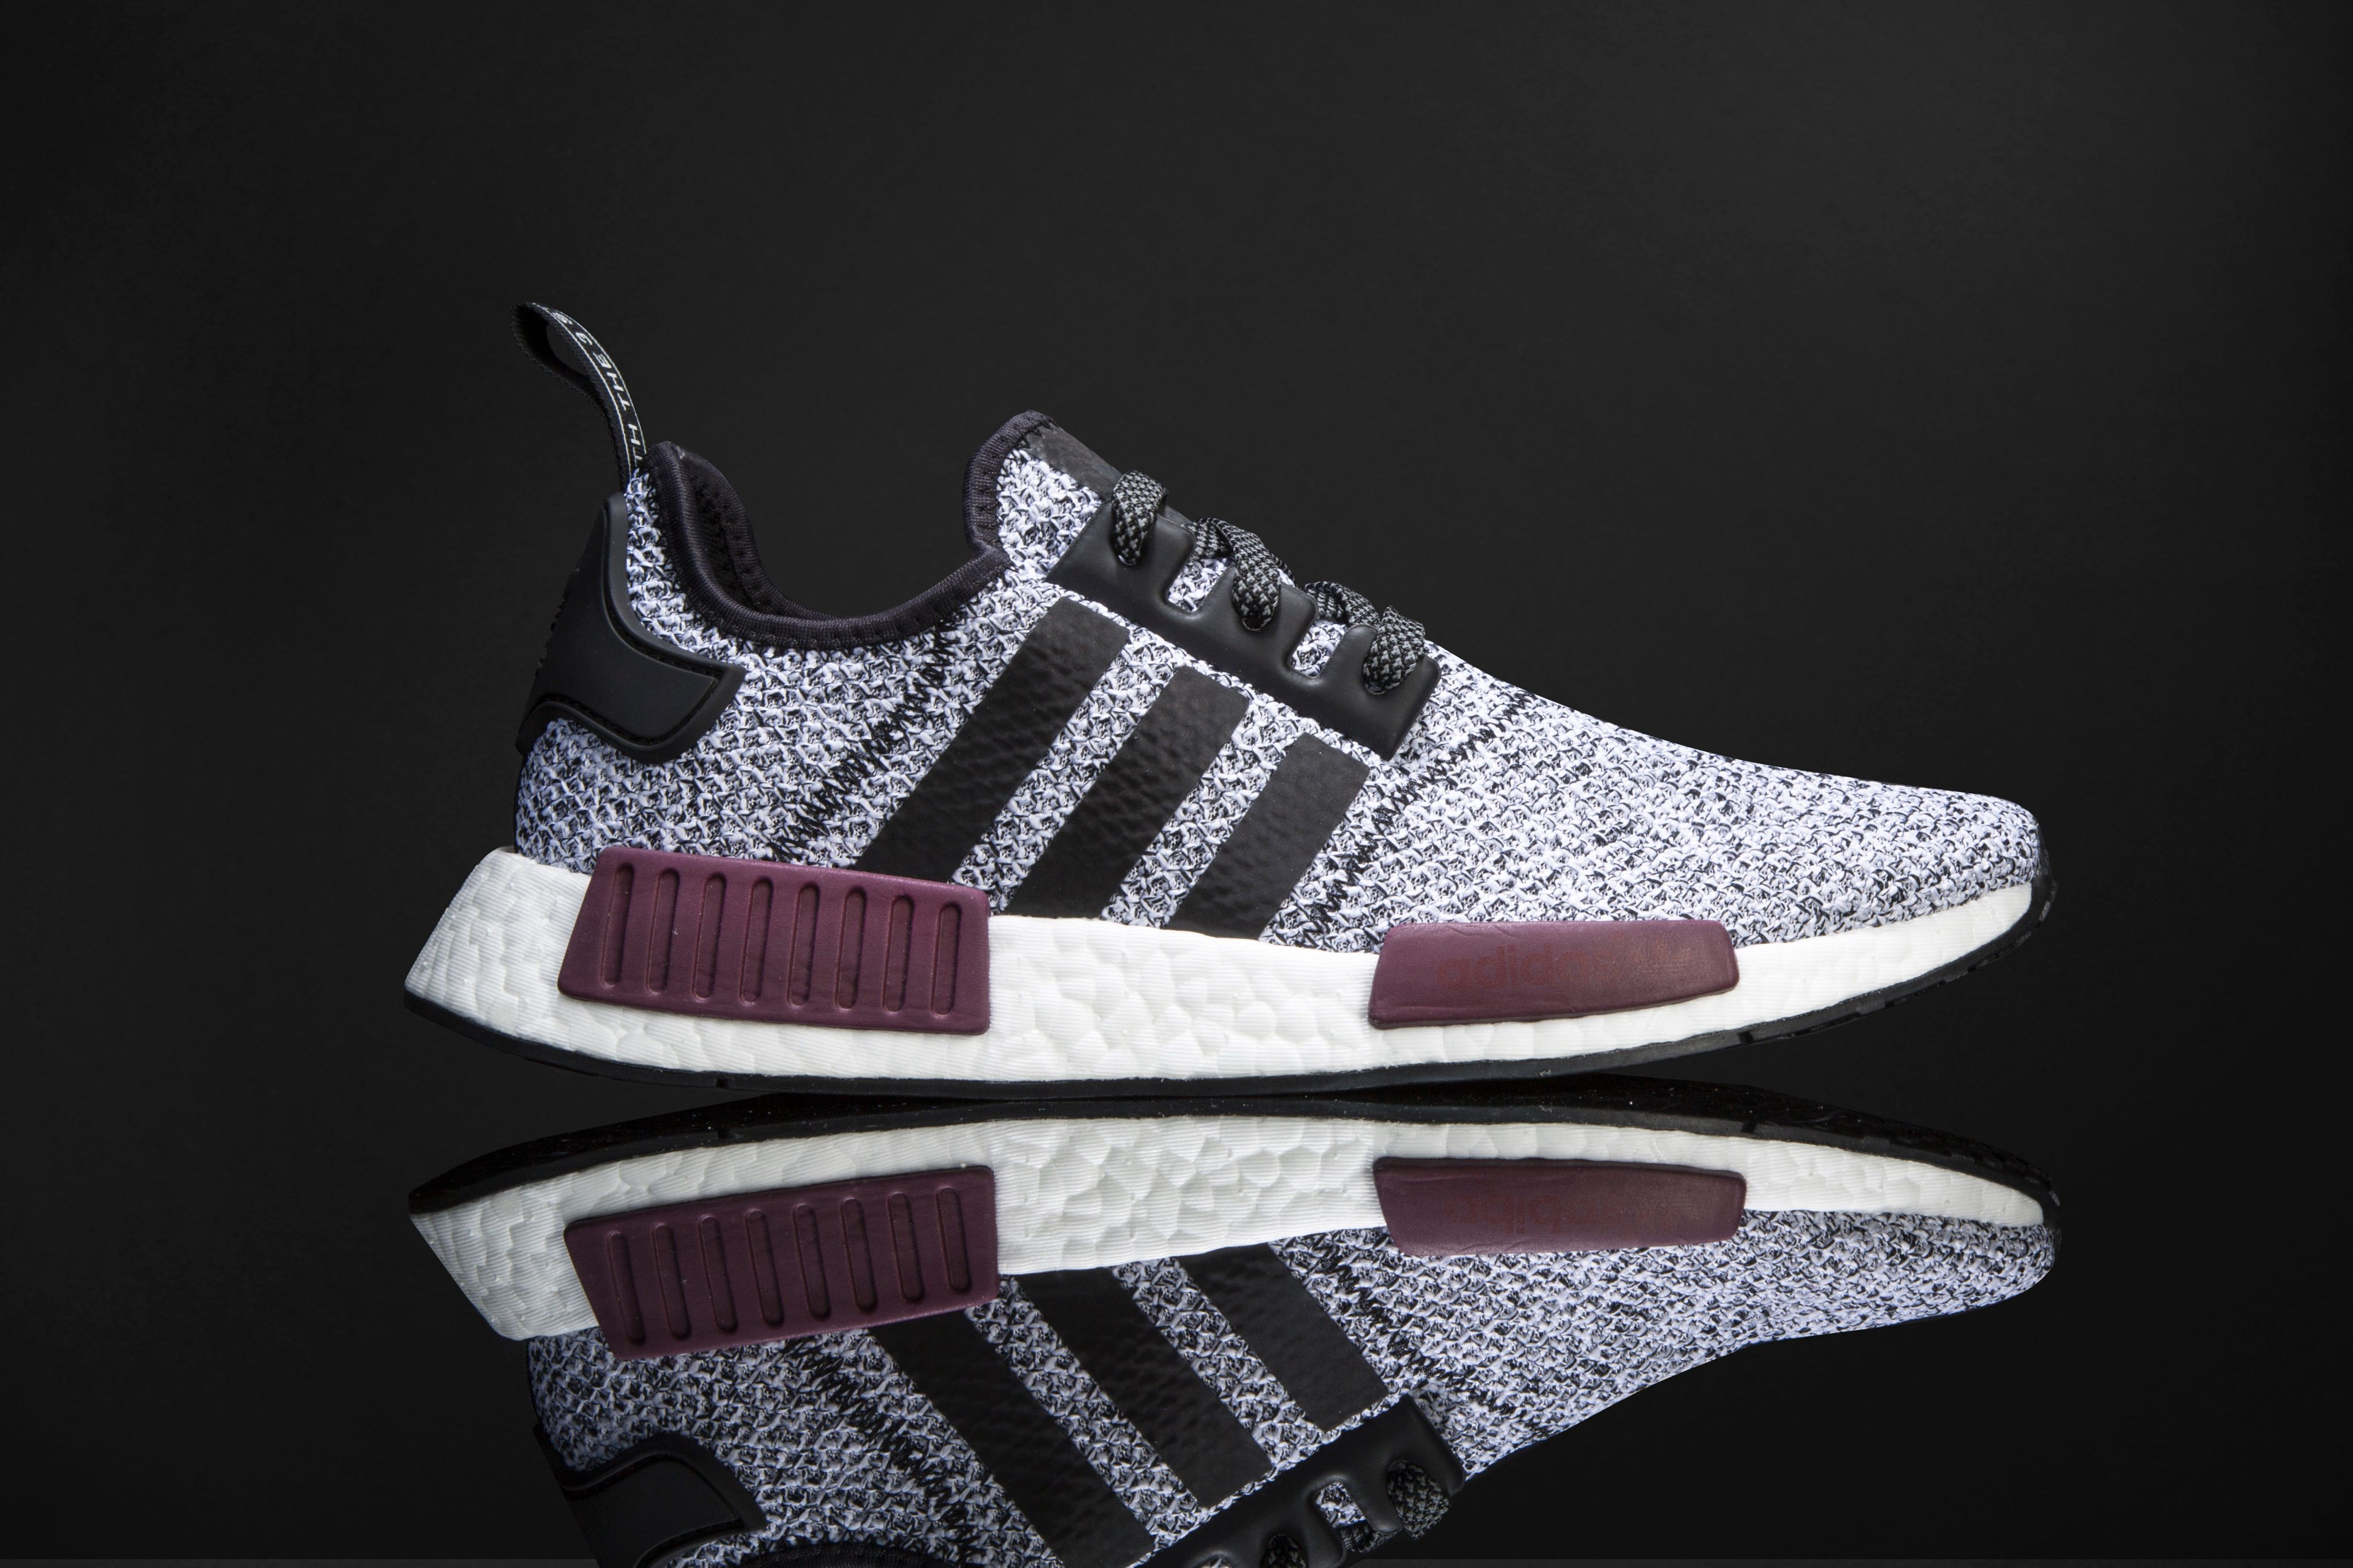 promo code 01ddc e114e This Reflective adidas NMD Is Exclusive To Champs Sports   Adidas nmd, Nmd  and Champs